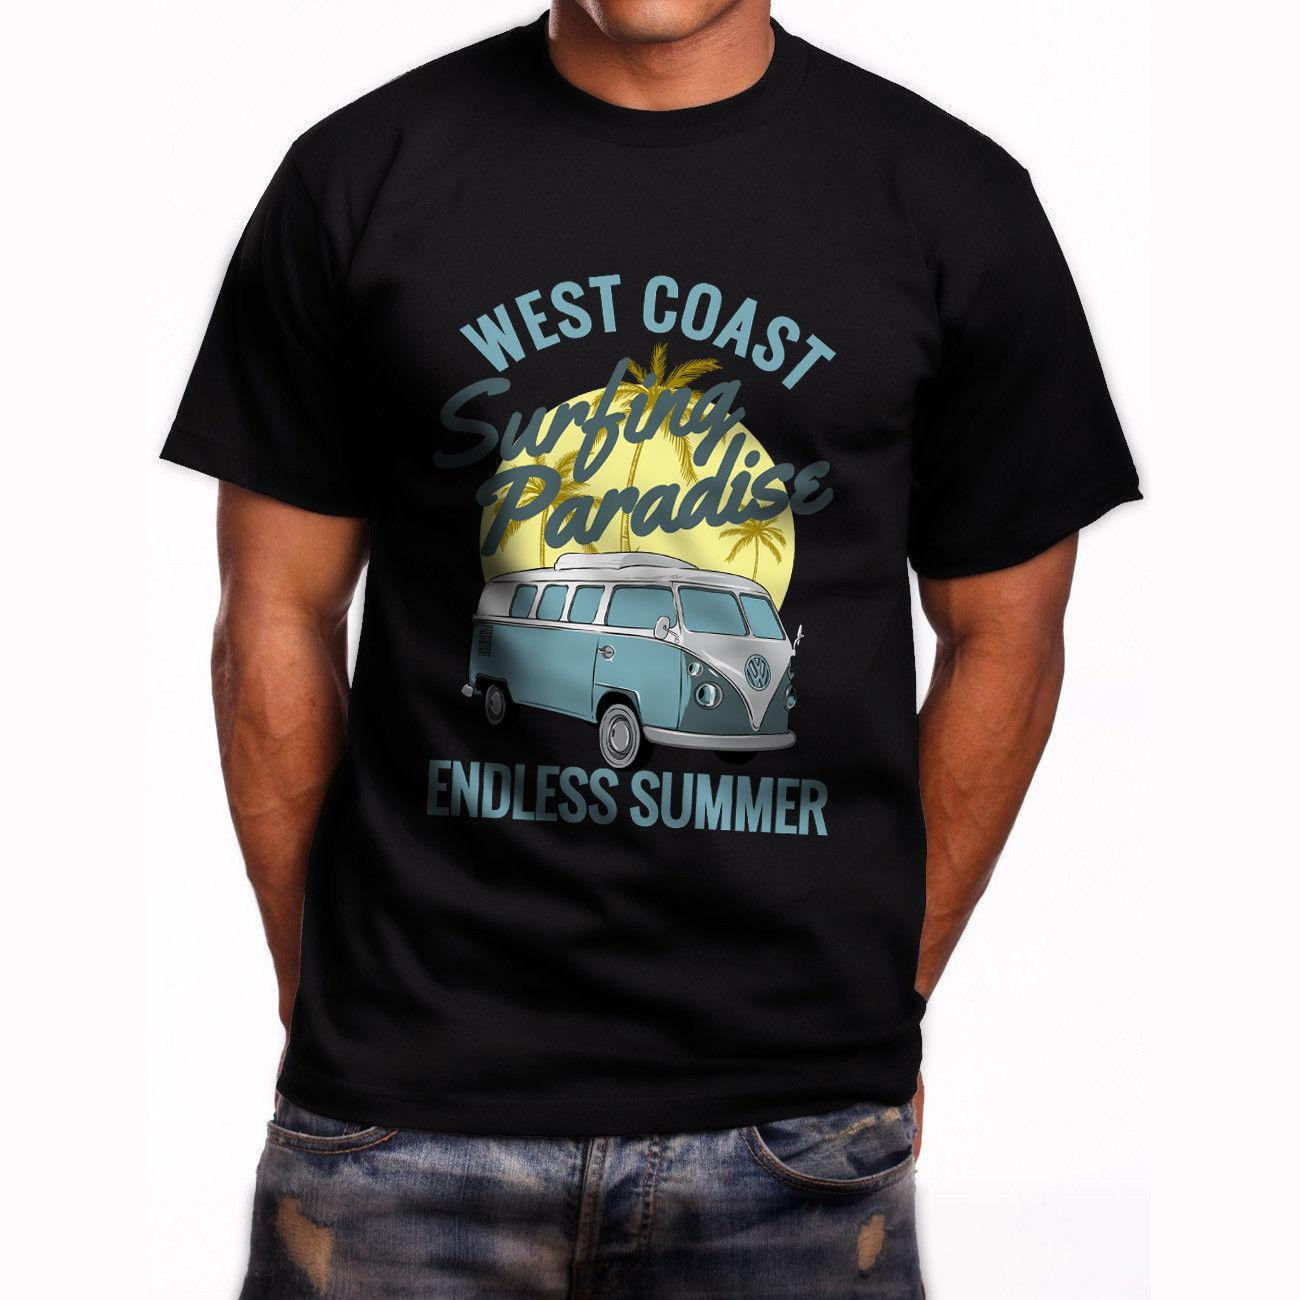 1a0190b749 West Coast Surfing Paradise Endless Summer Men'S Black T Shirt 2018 Funny  Tee Cute T Shirts Man 100% Cotton Cool Funky Tee Shirts Humor T Shirt From  ...